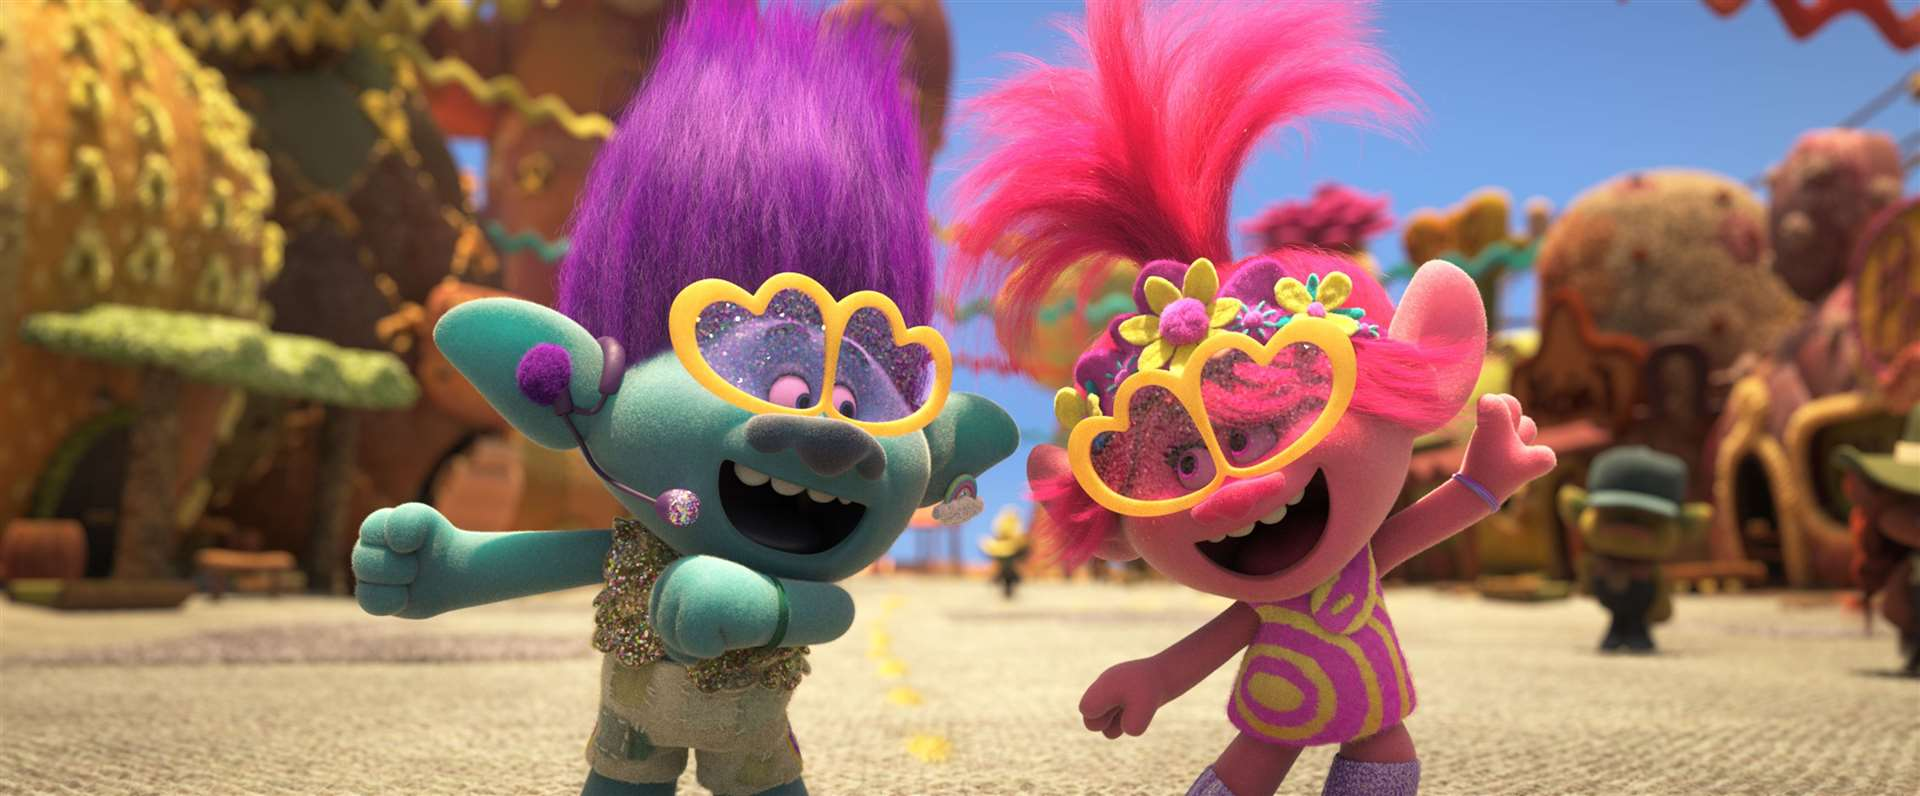 Trolls World Tour. Picture credit: PA Photo/DreamWorks Animation LLC./Universal Pictures.